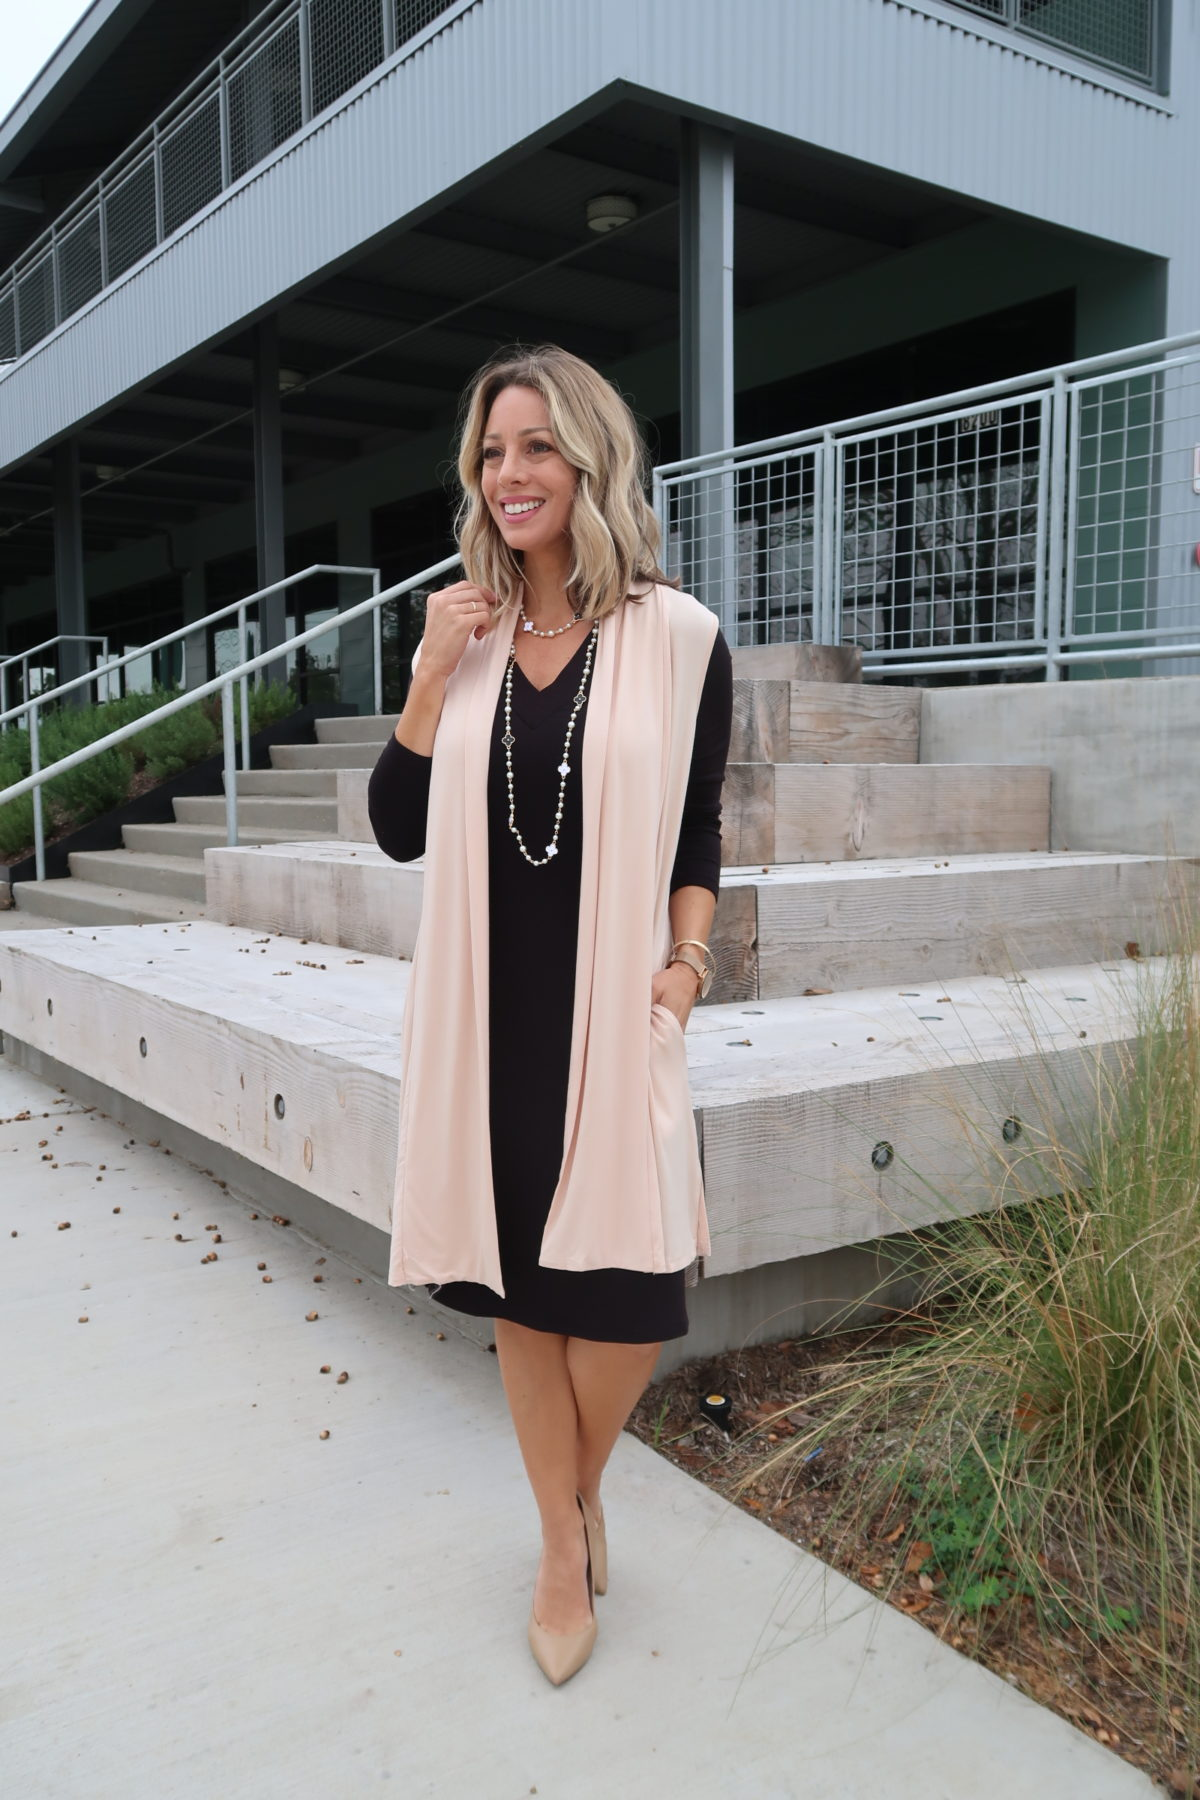 Pink Cardigan, Black Dress, Pearl Clover Necklace, Nude Heels